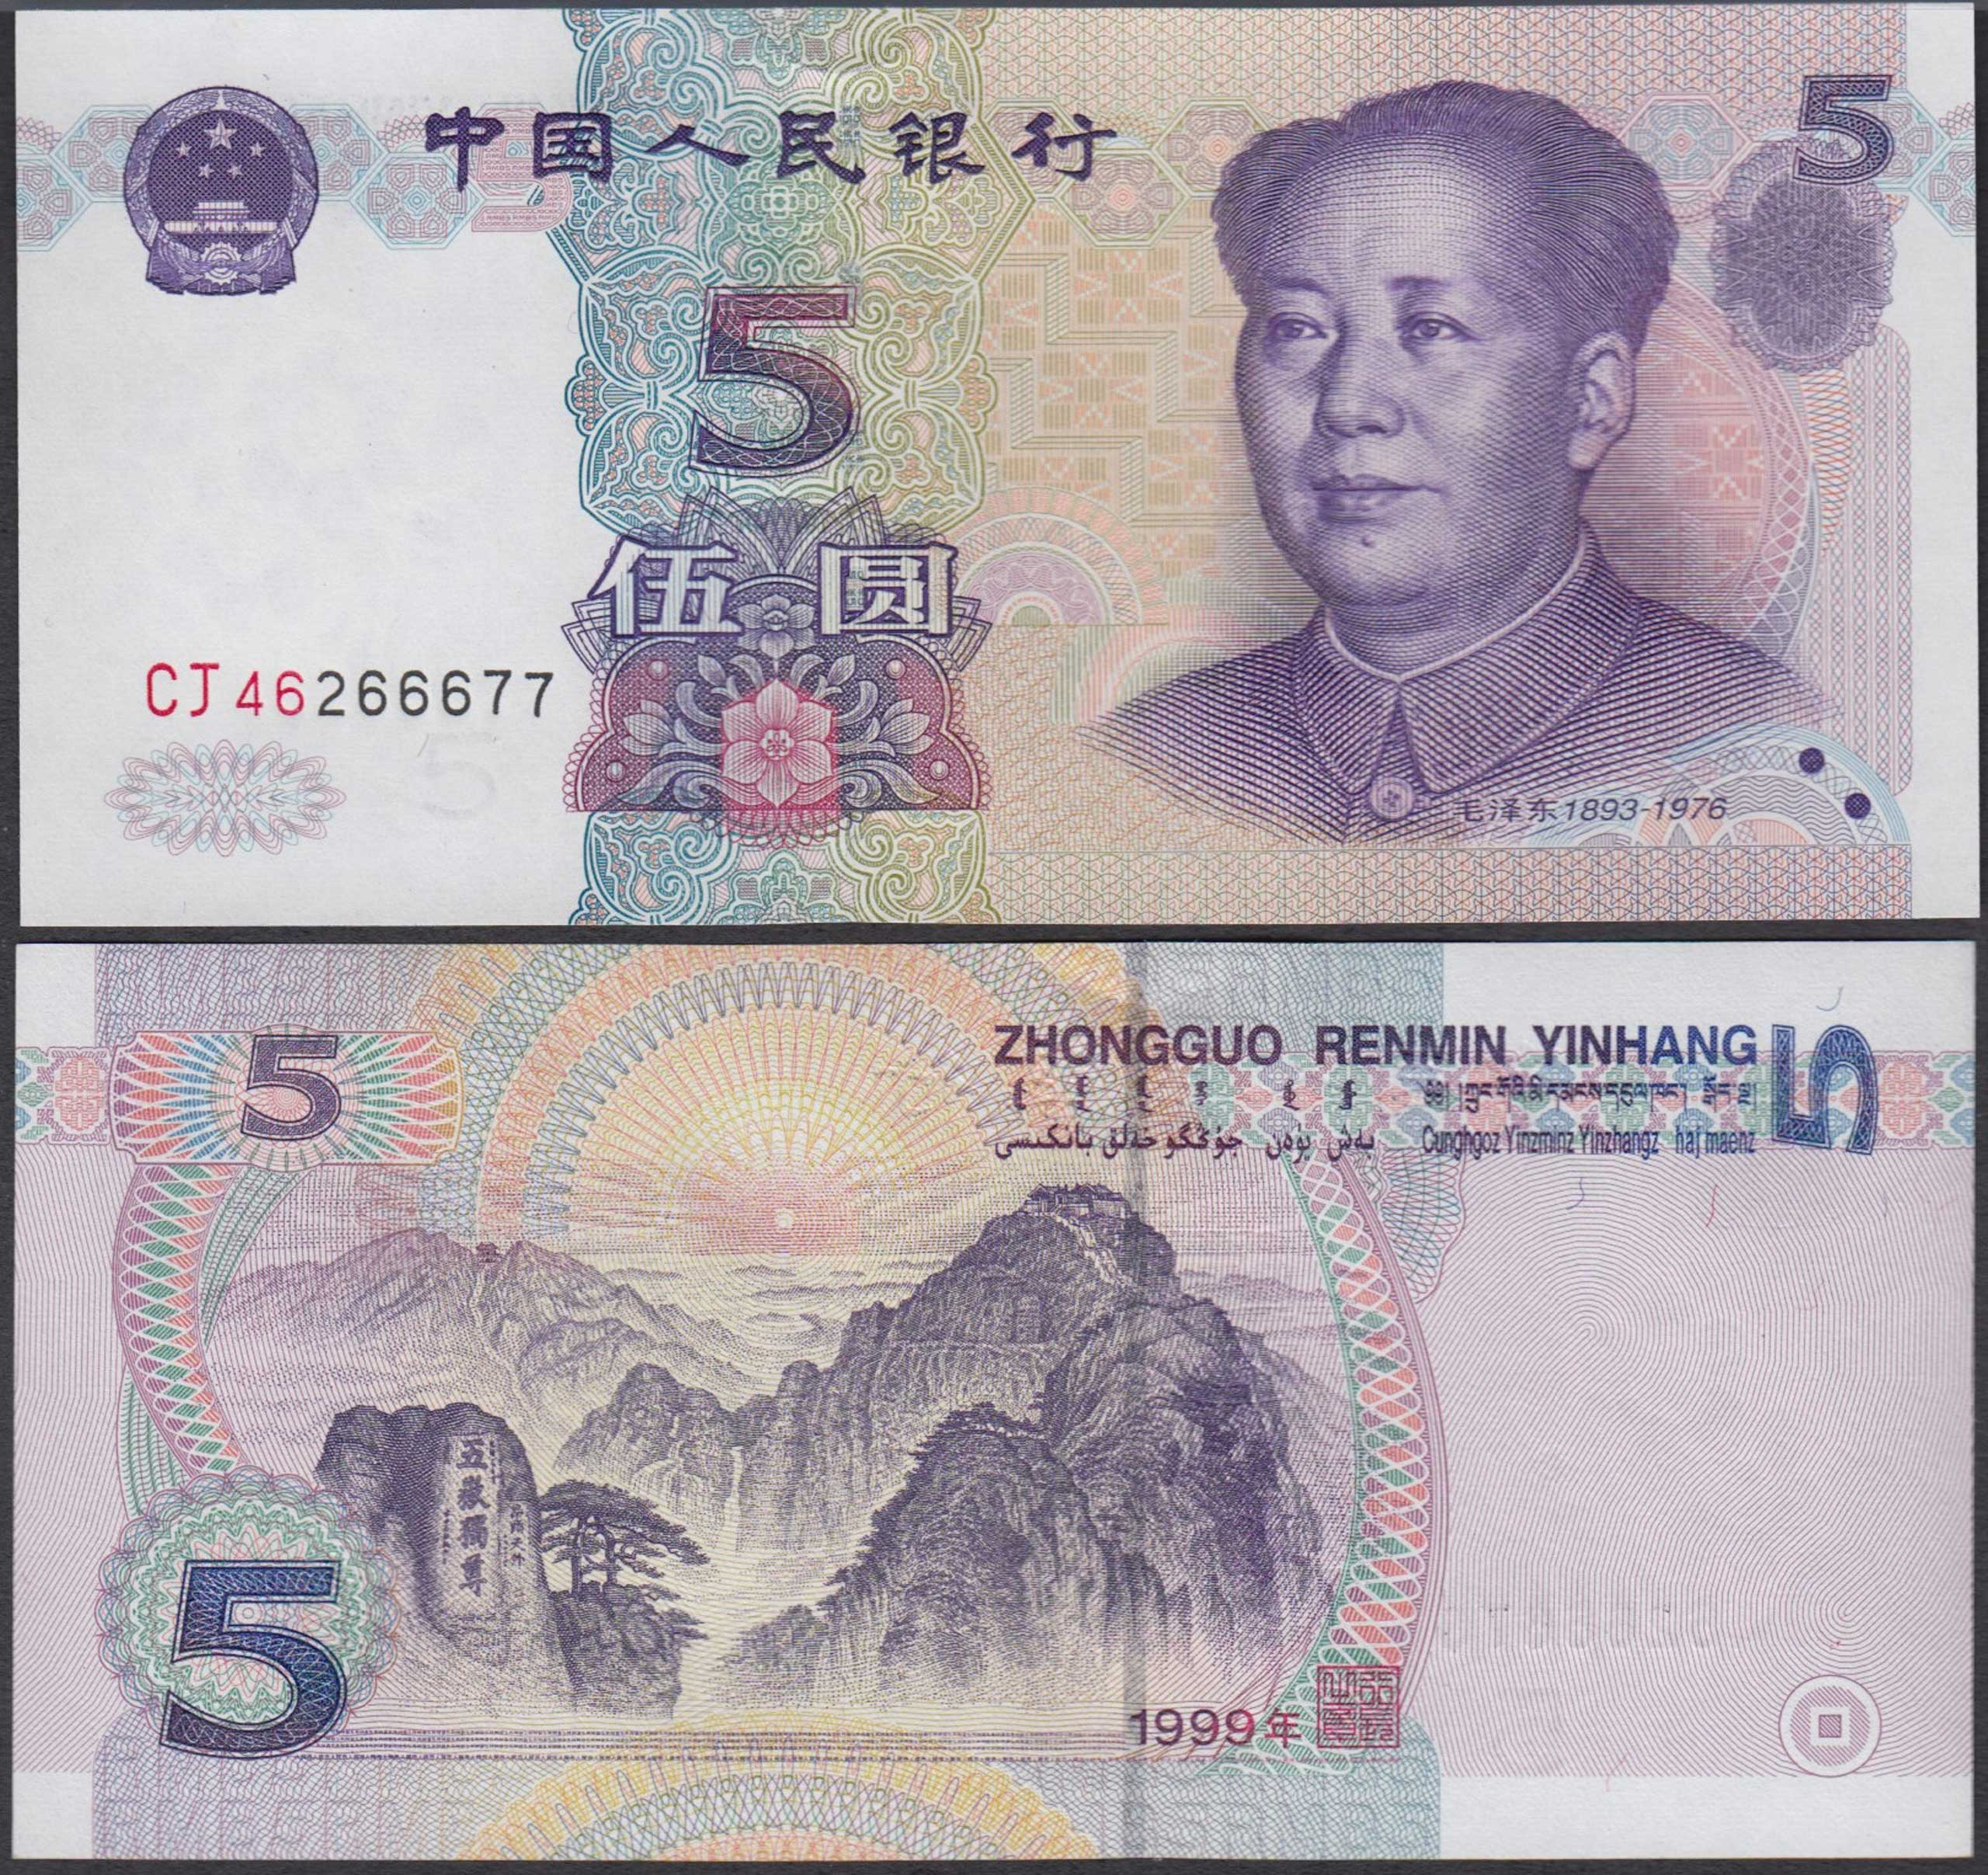 <strong>Chinese Renminbi</strong>